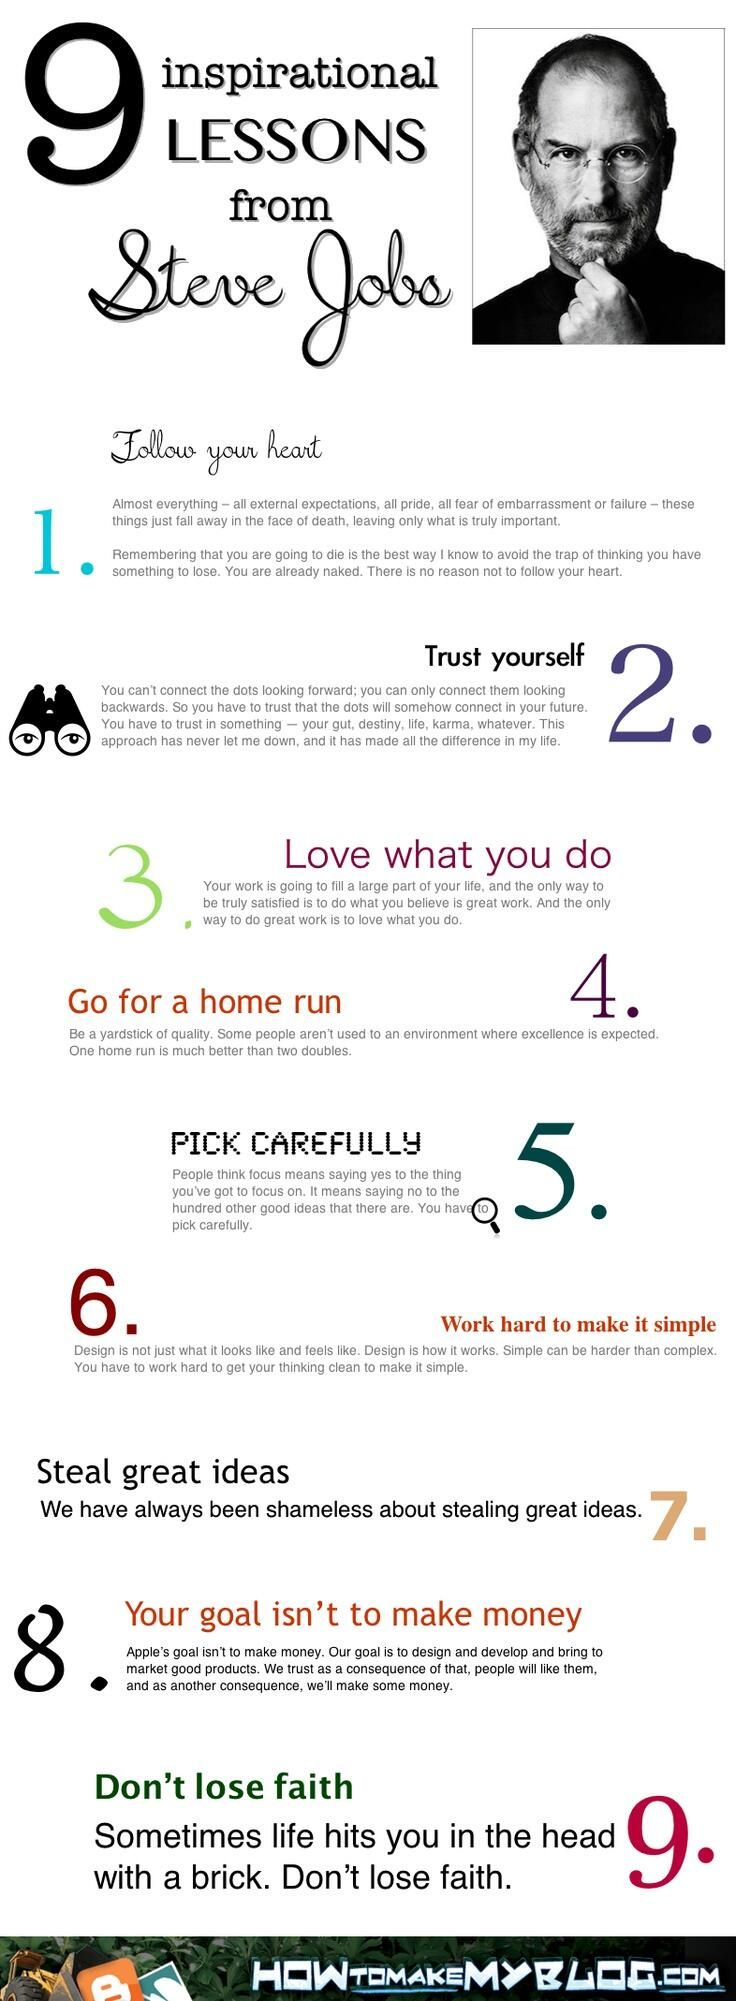 9 Inspiration Lessons from Steve Jobs #travel #studyabroad #advice www.iesabroad.org your world [redefined]